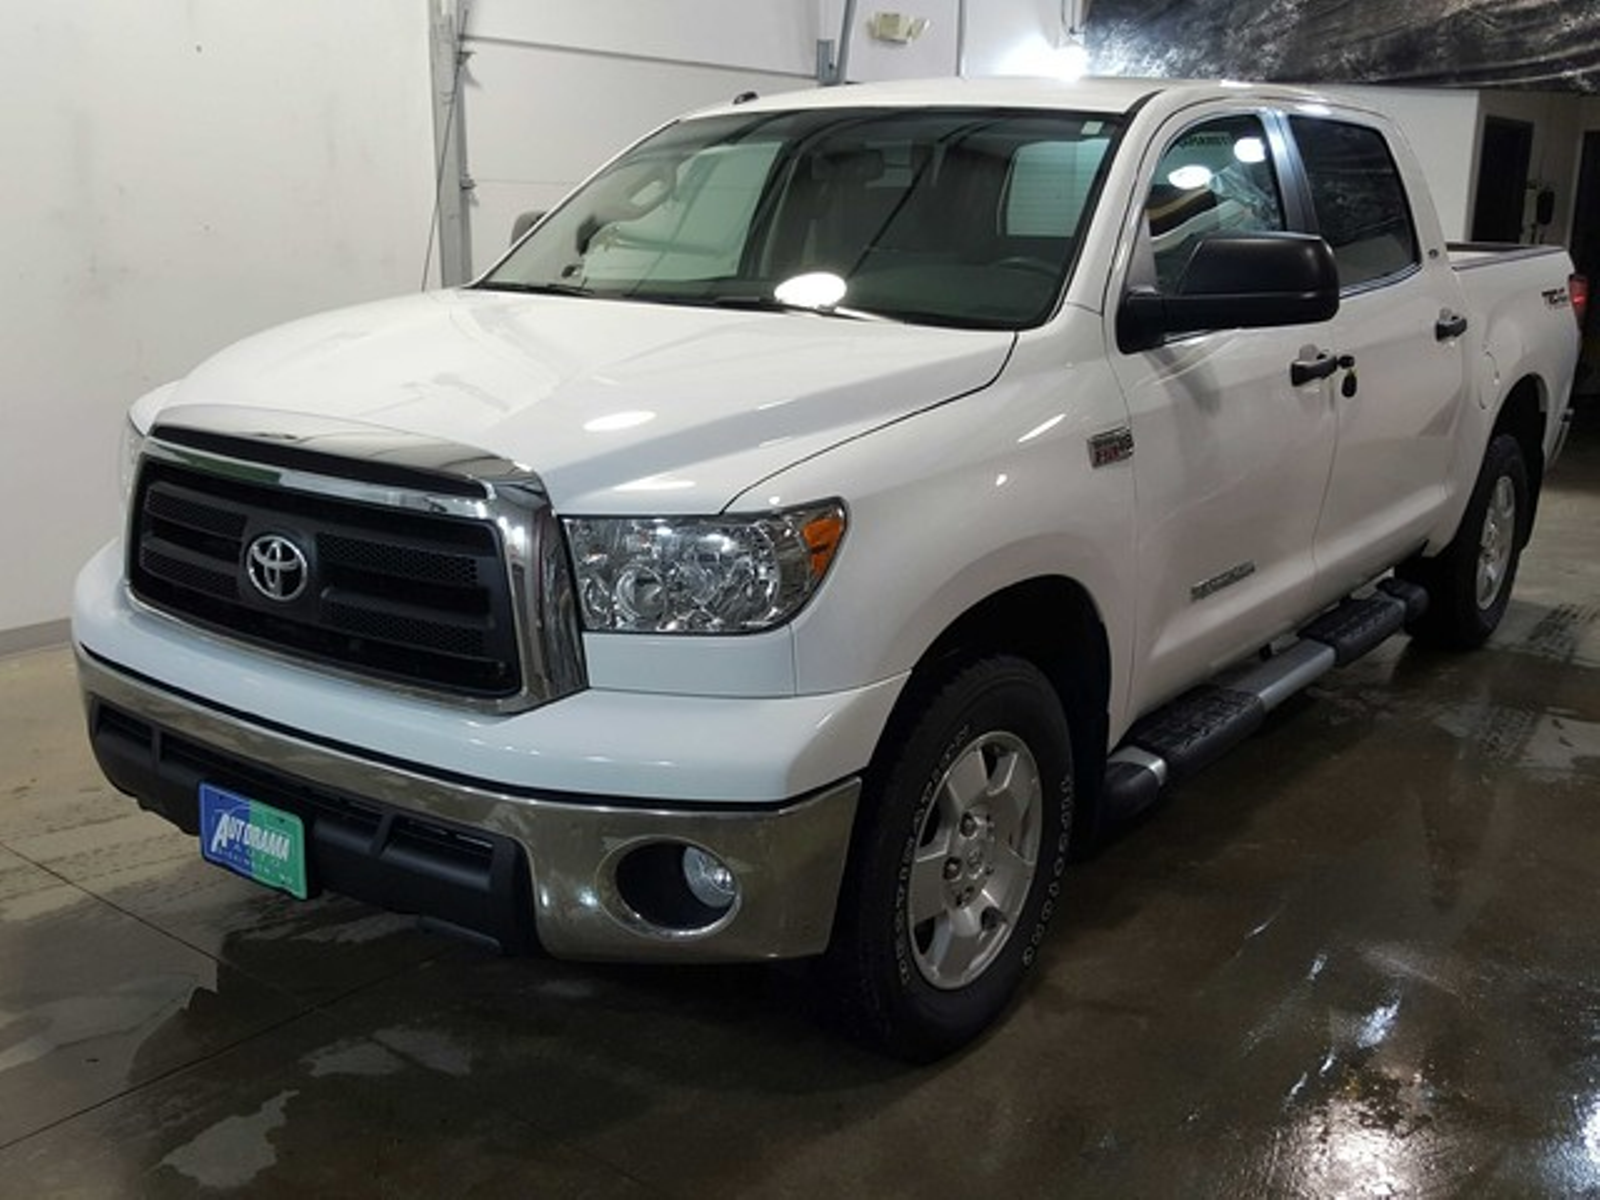 2013 Toyota Tundra For Sale >> 2013 Toyota Tundra CREWMAX SR5 57 TRD city ND AutoRama Auto Sales